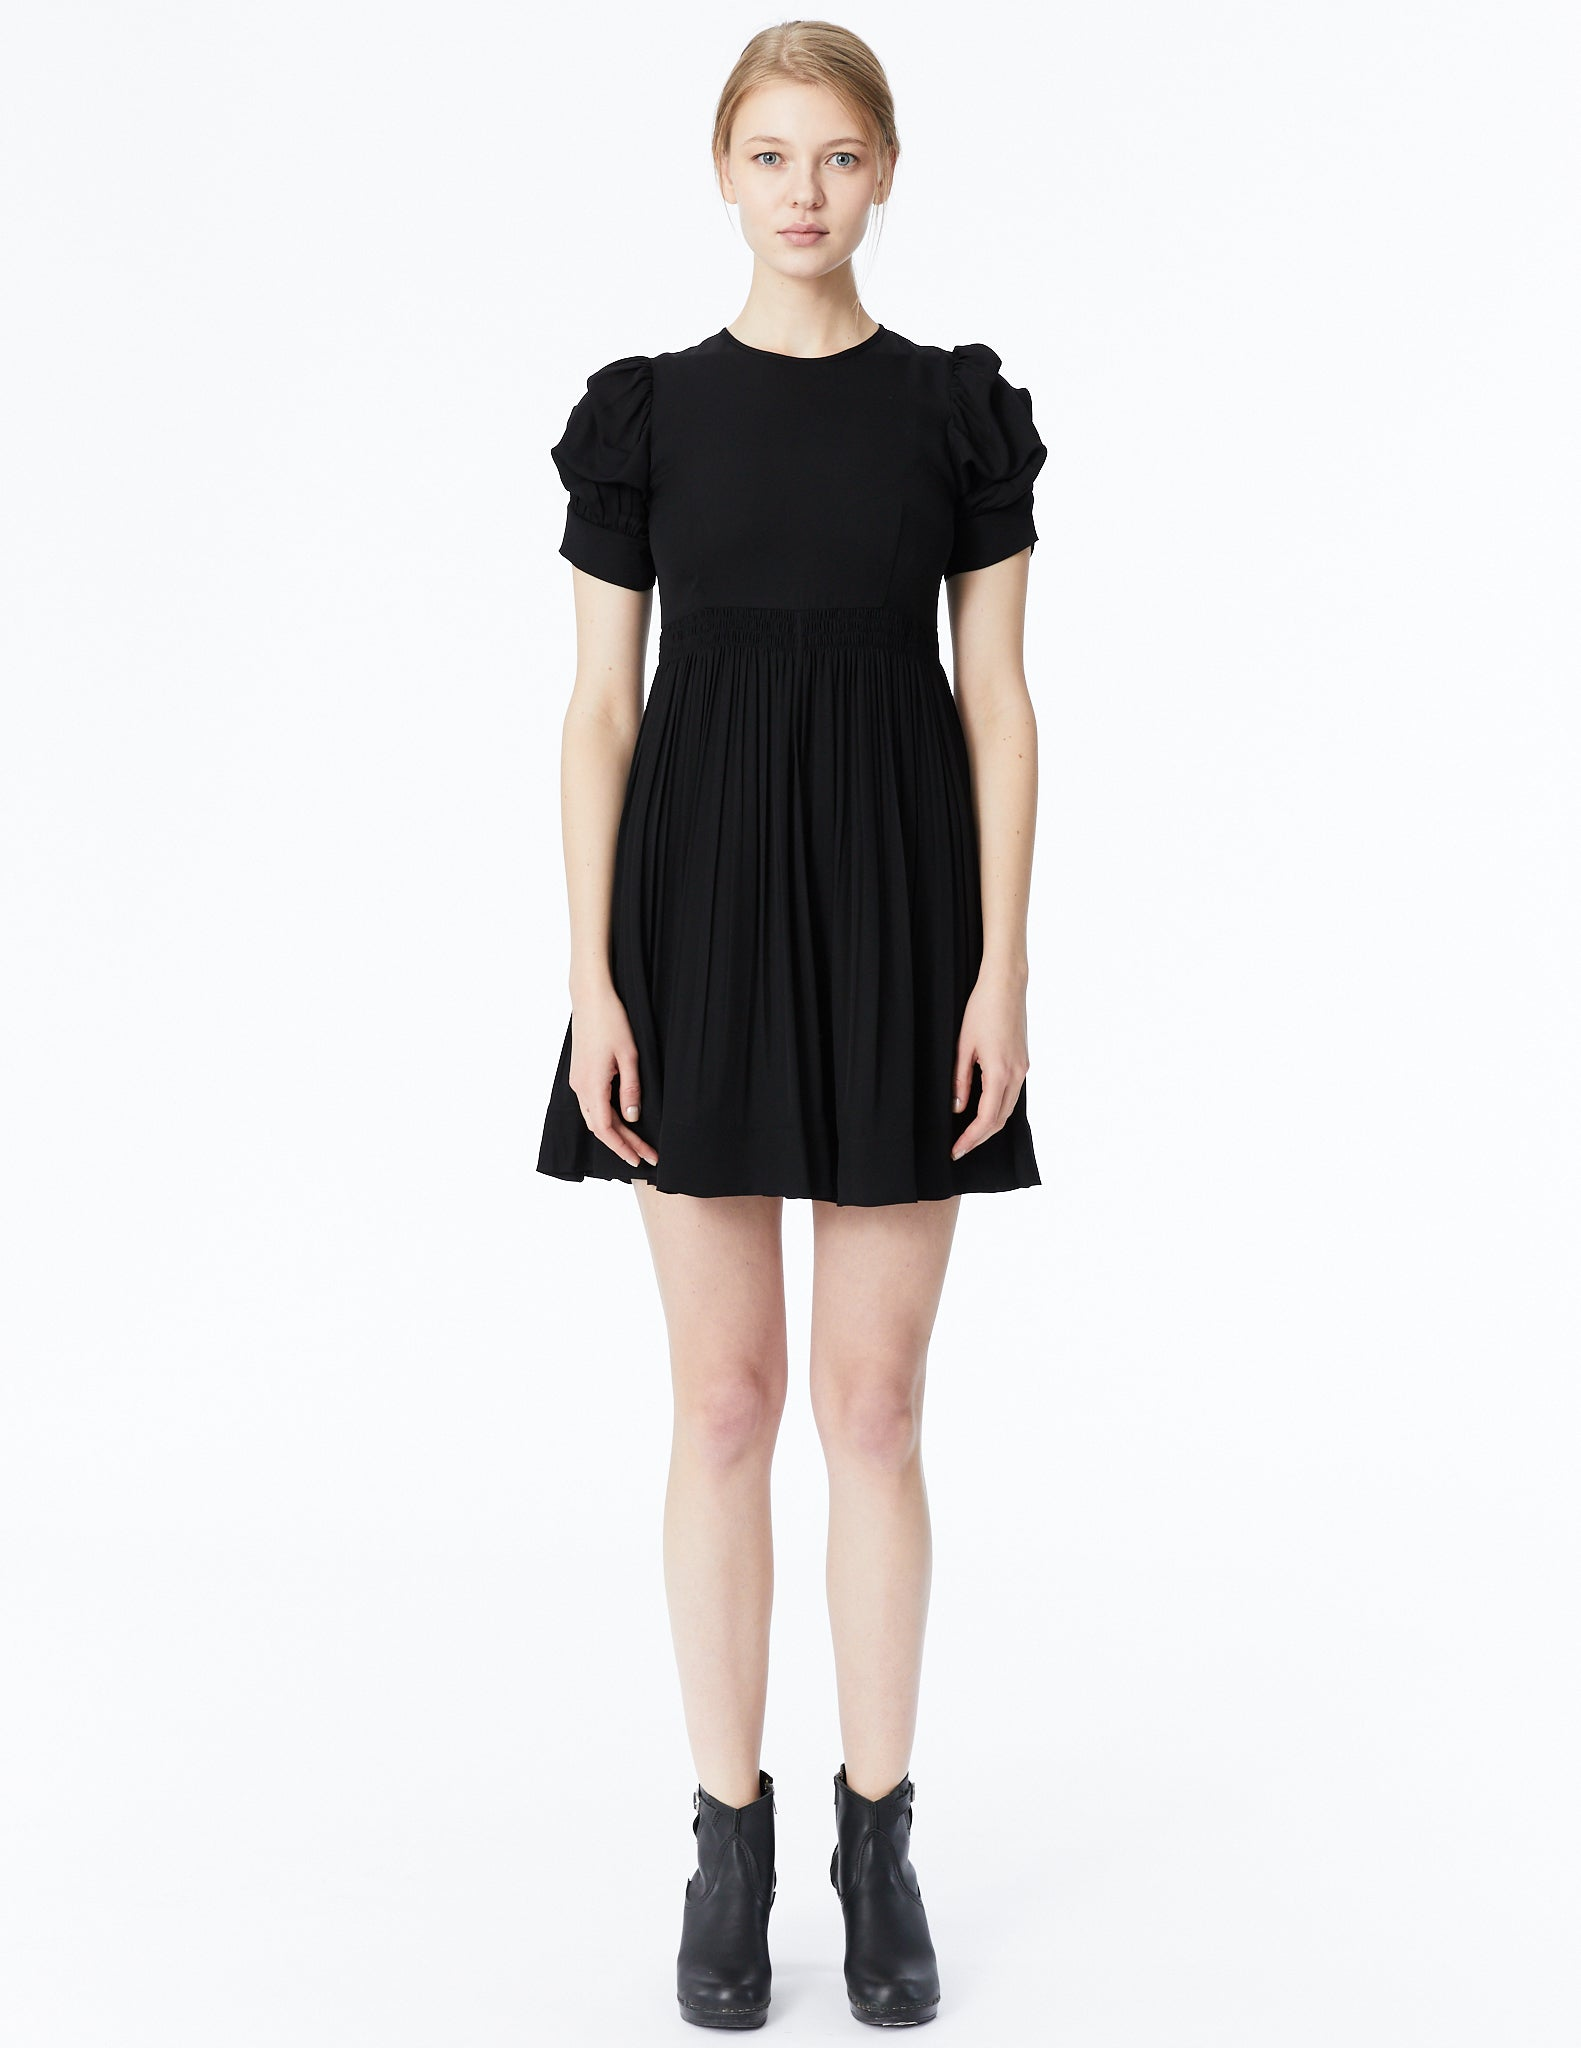 morgane le fay silk dress with pouf sleeves and gathered skirt